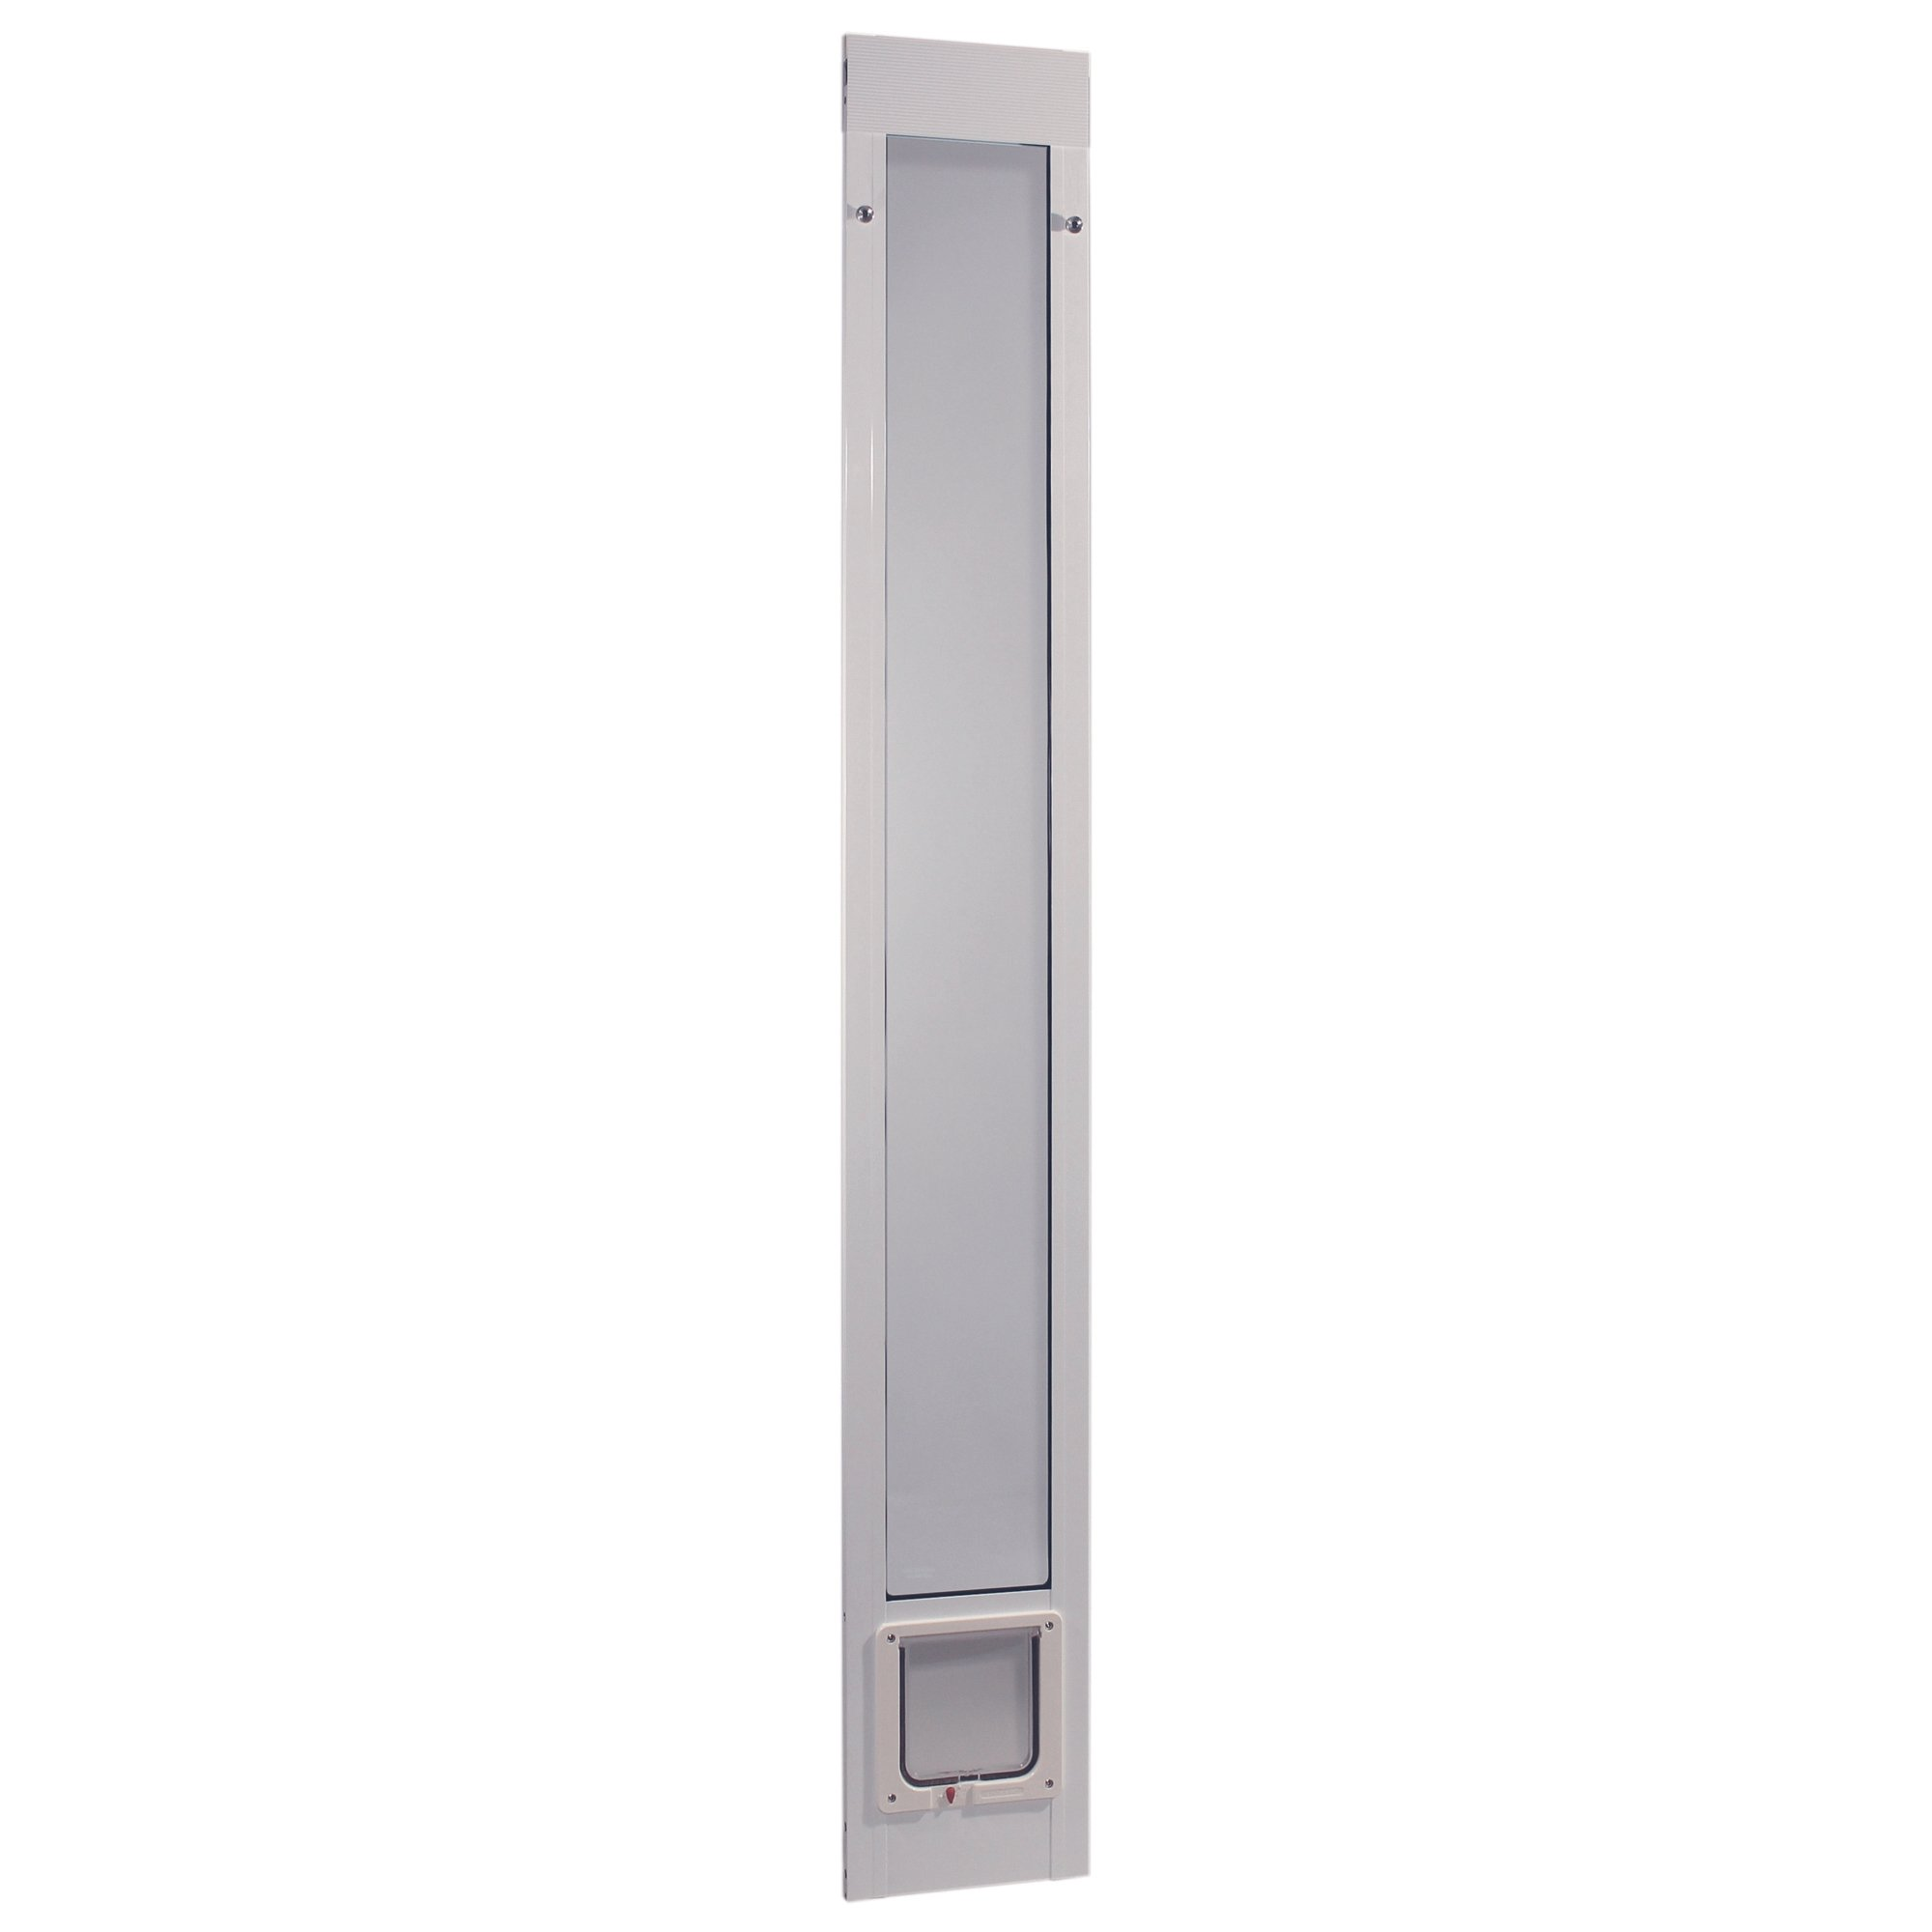 Ideal Pet Products 96PATCFW 96'' Fast Fit Aluminum Pet Patio Door with Flap Mill, Small/6.25'' x 6.25'', White